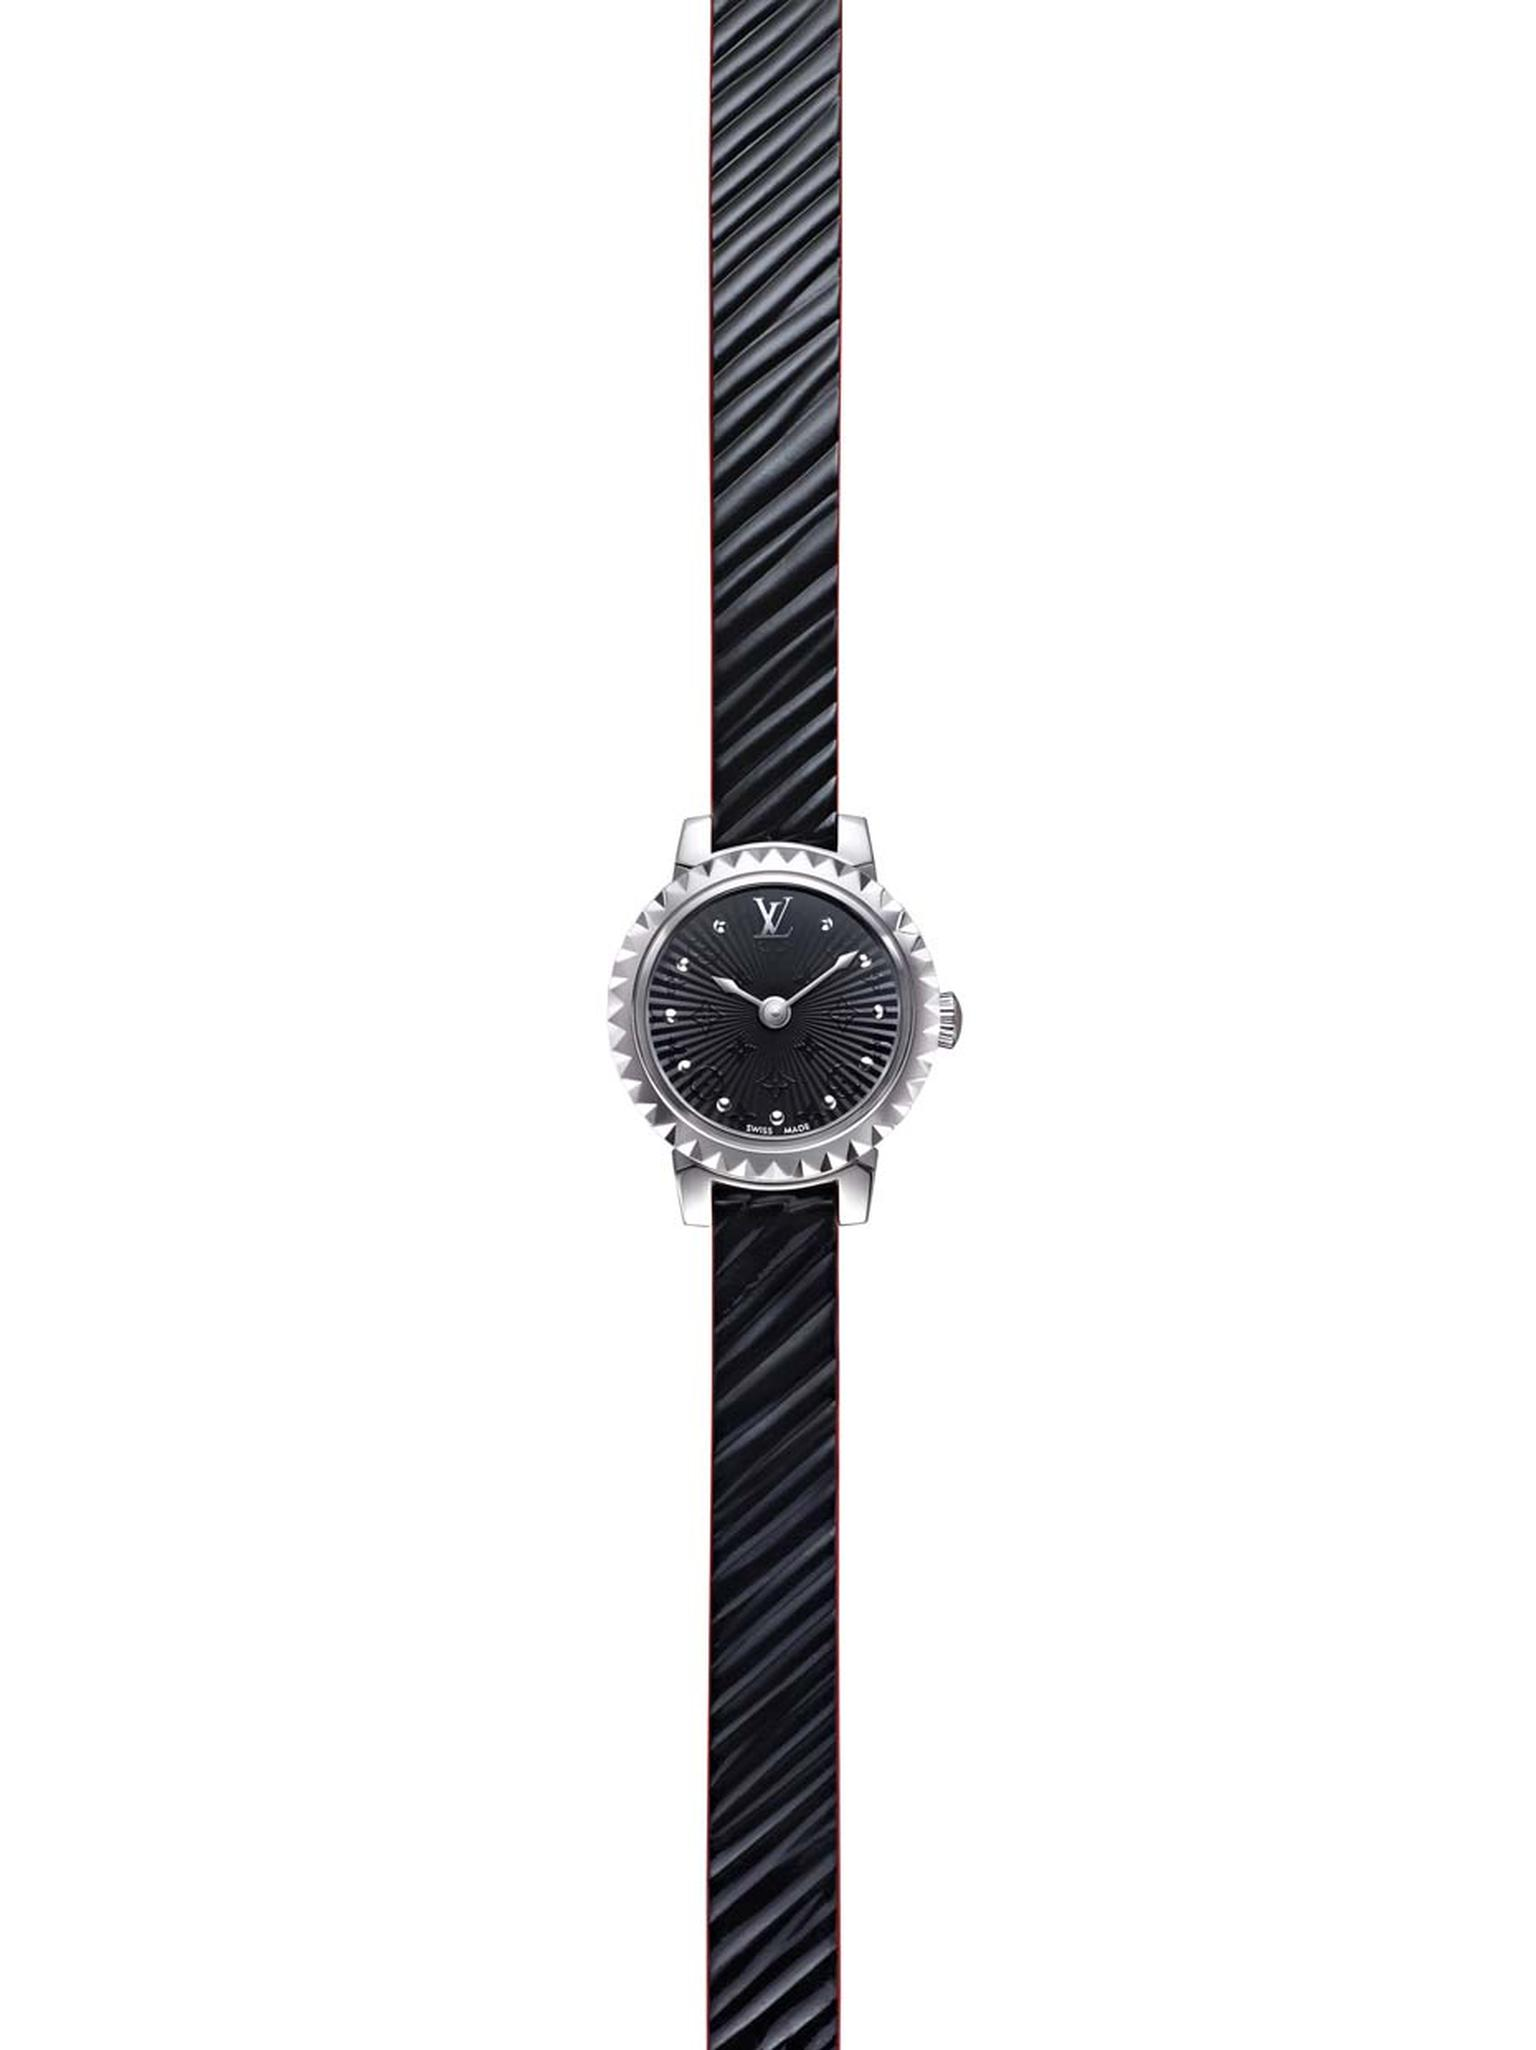 Louis Vuitton watches_Tambour Monogram Epi Noir.jpg